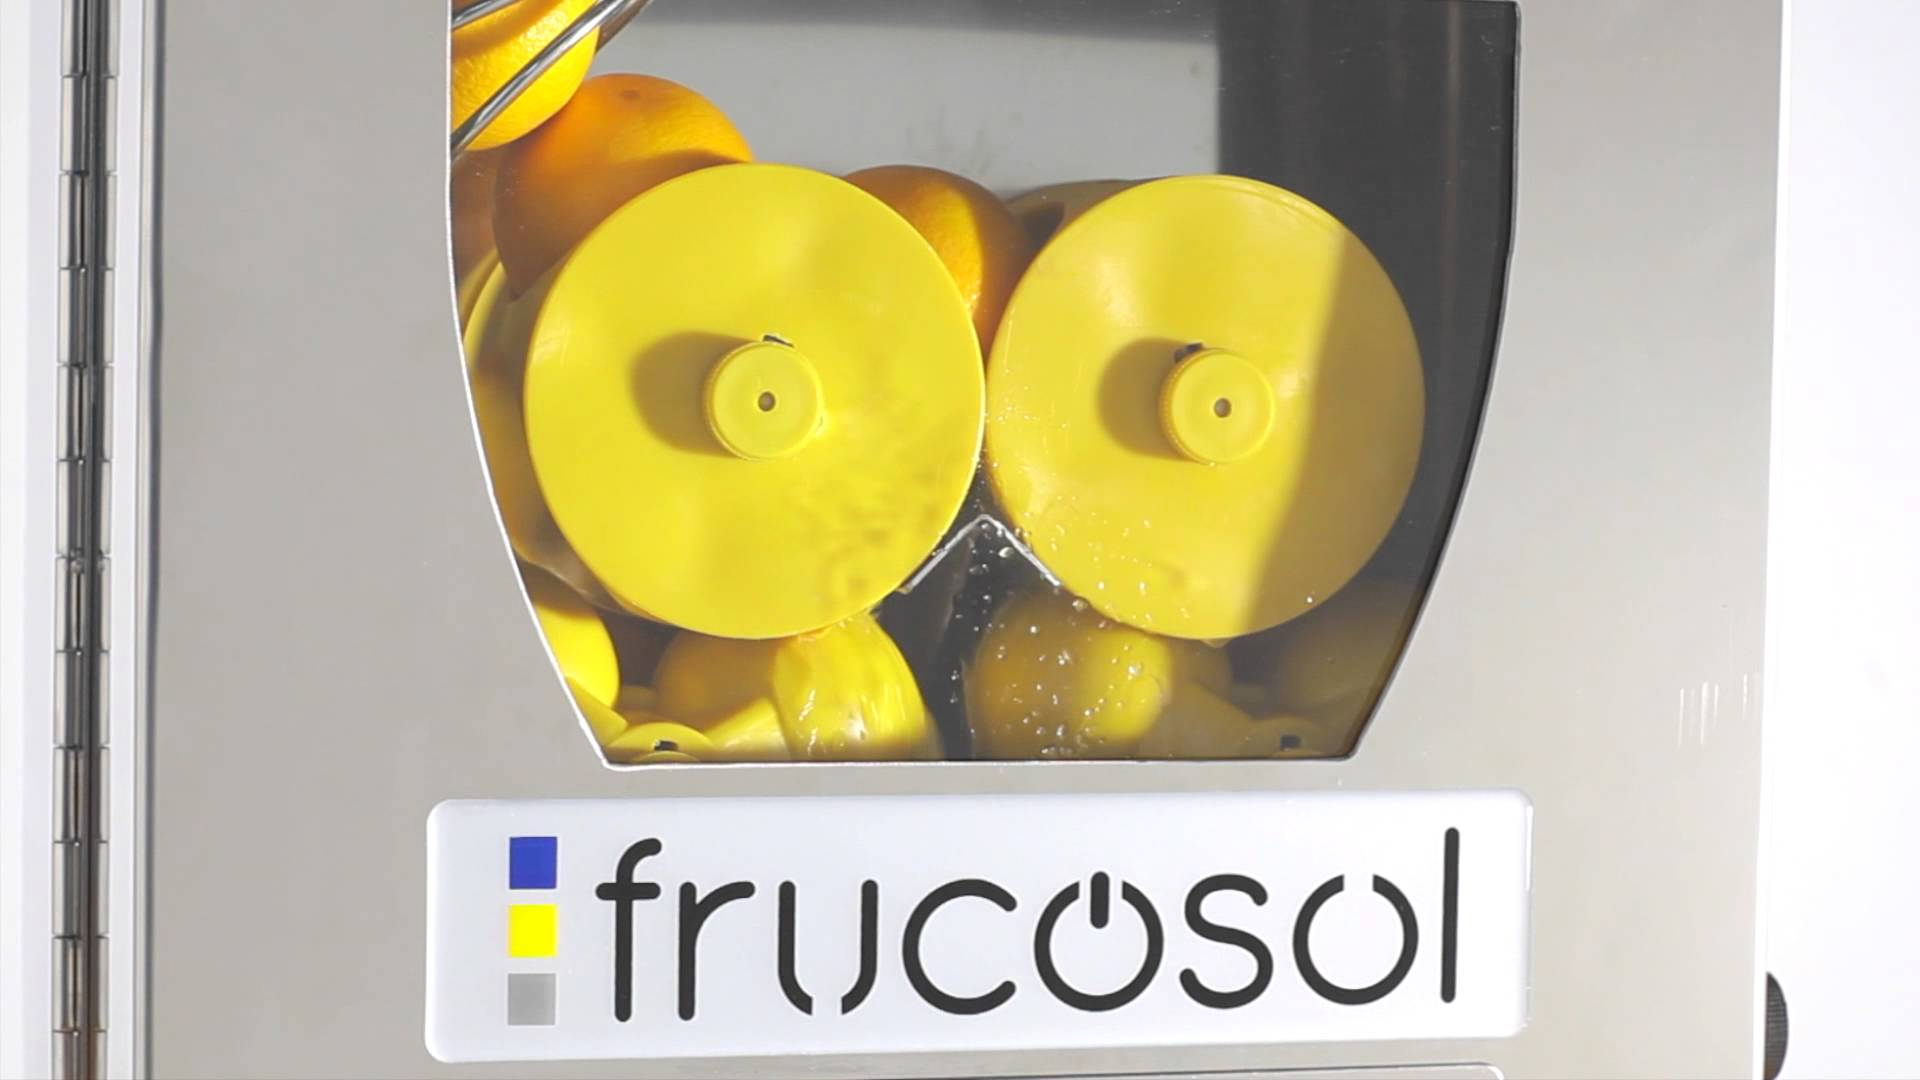 Frucosol – F50 Orange Juicer Machine